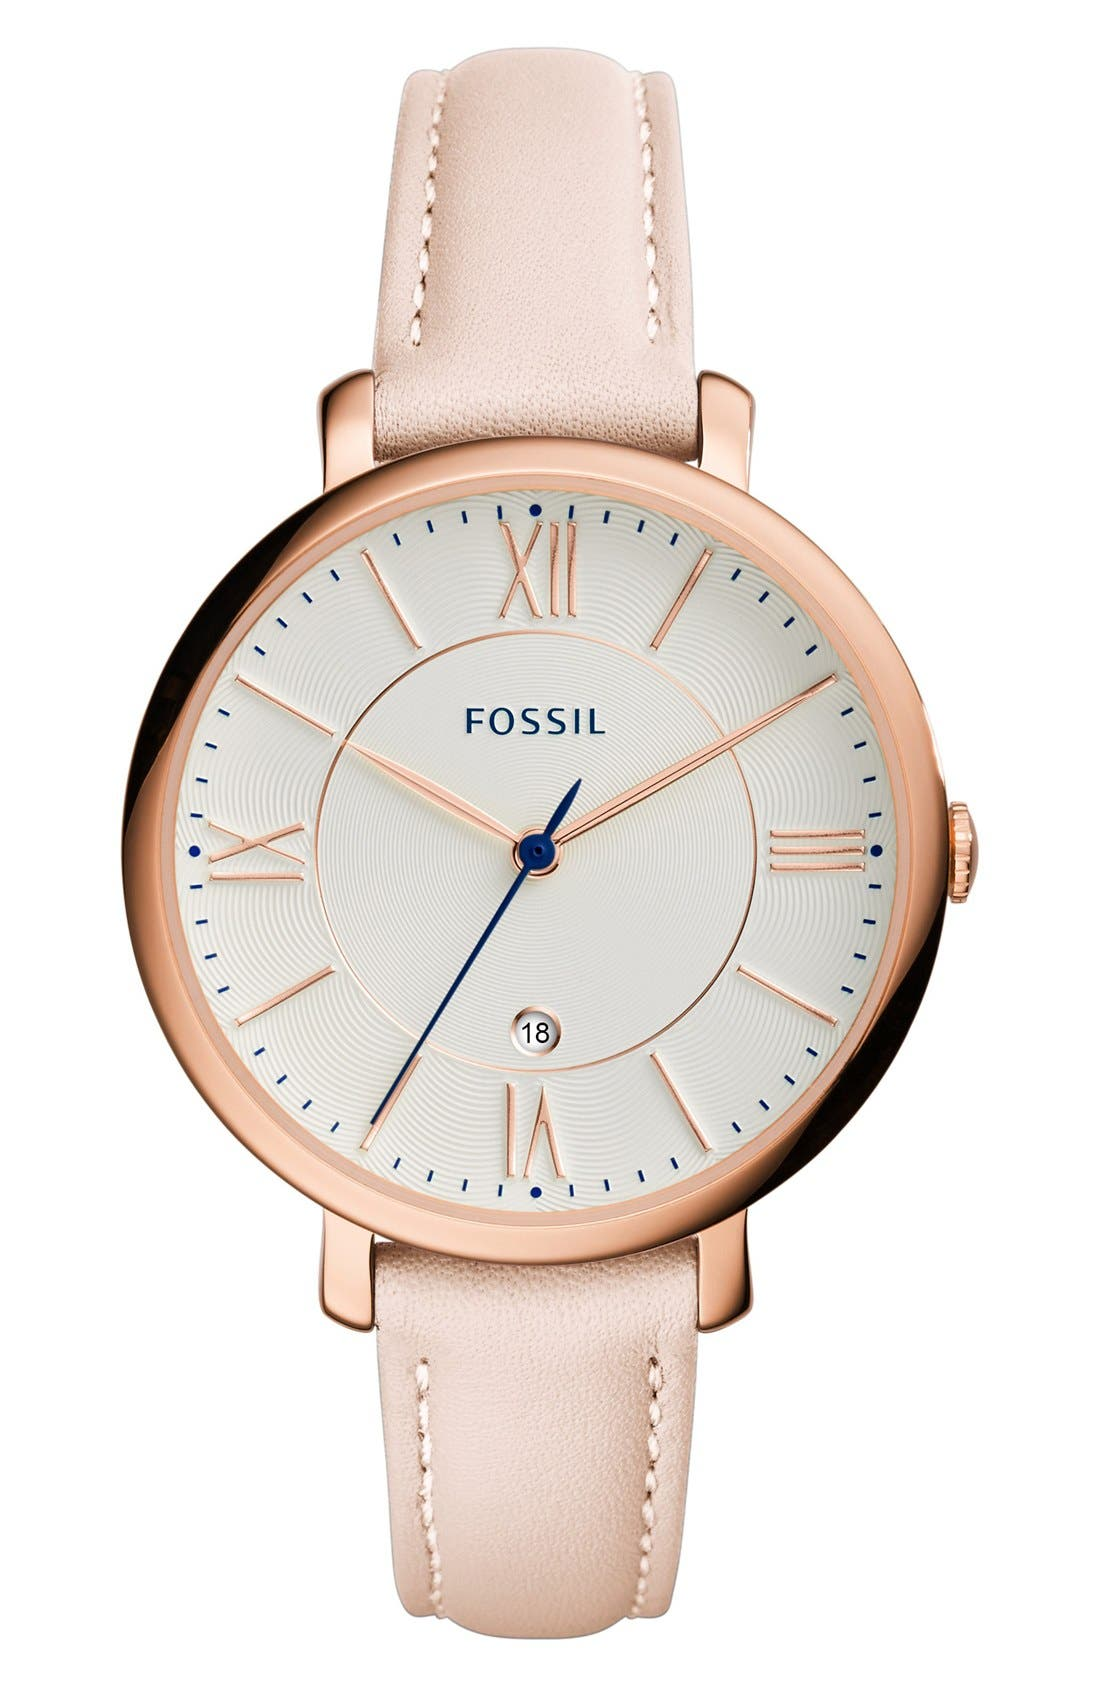 Main Image - Fossil 'Jacqueline' Leather Strap Watch, 36mm